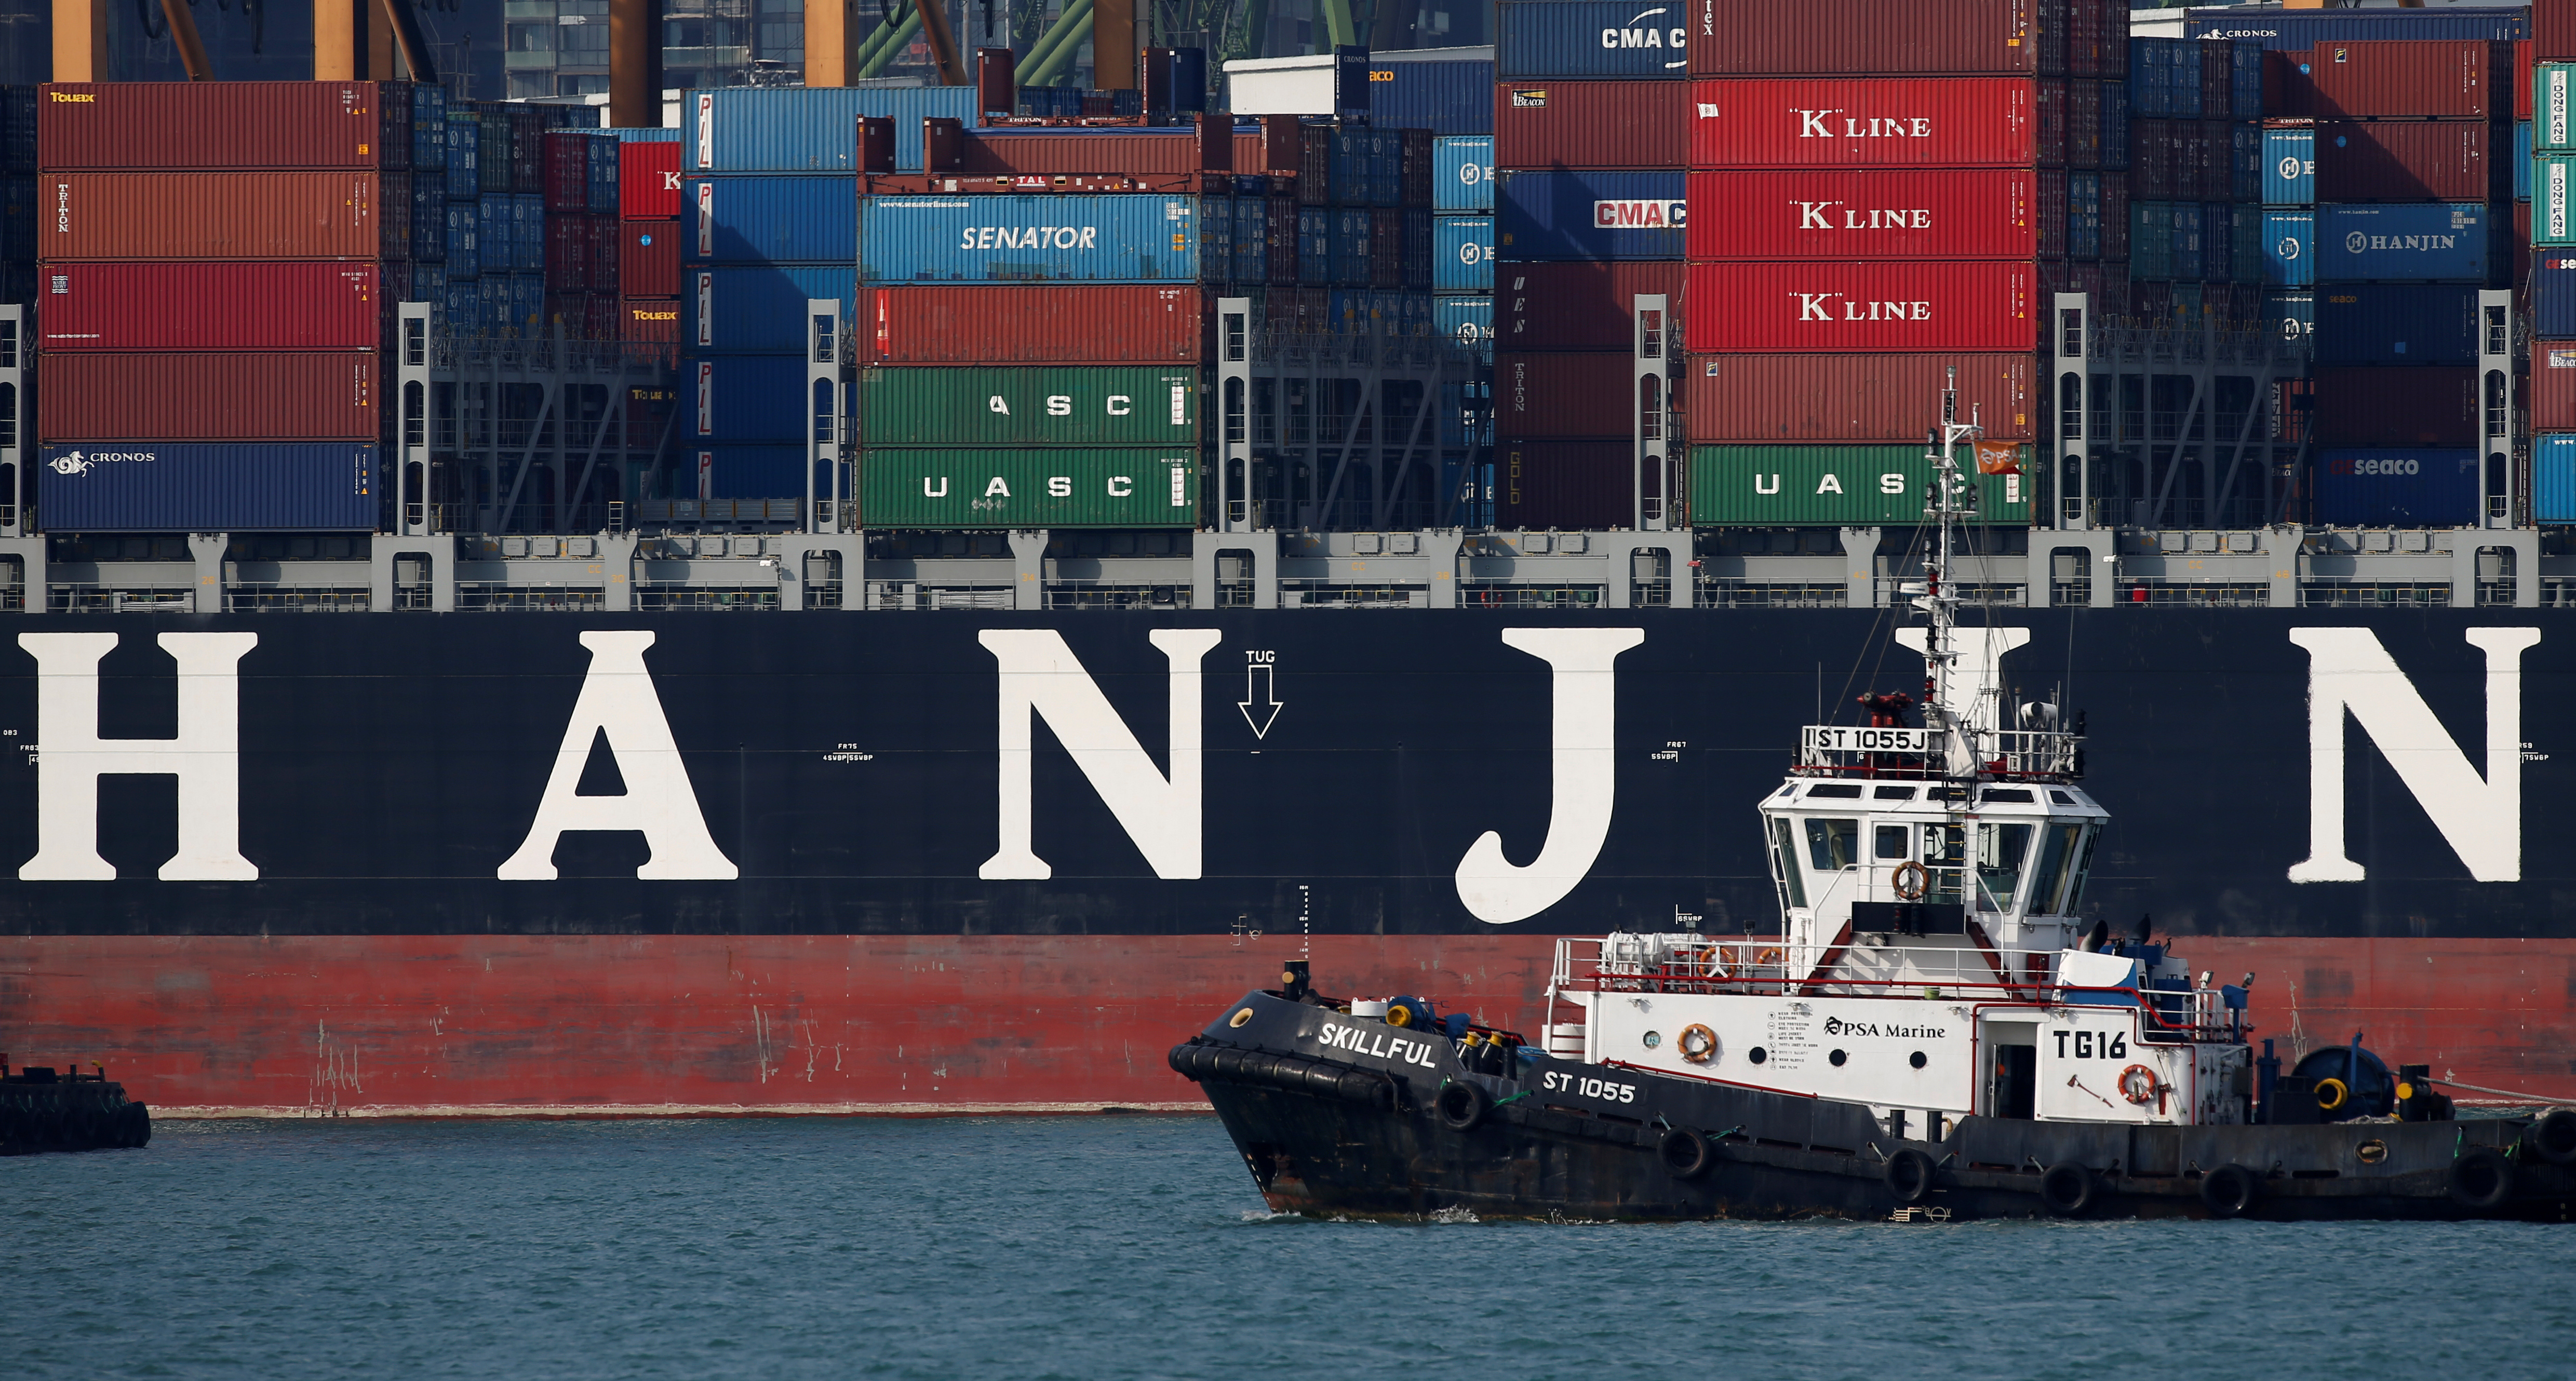 Column: This South Korean shipping company's collapse could